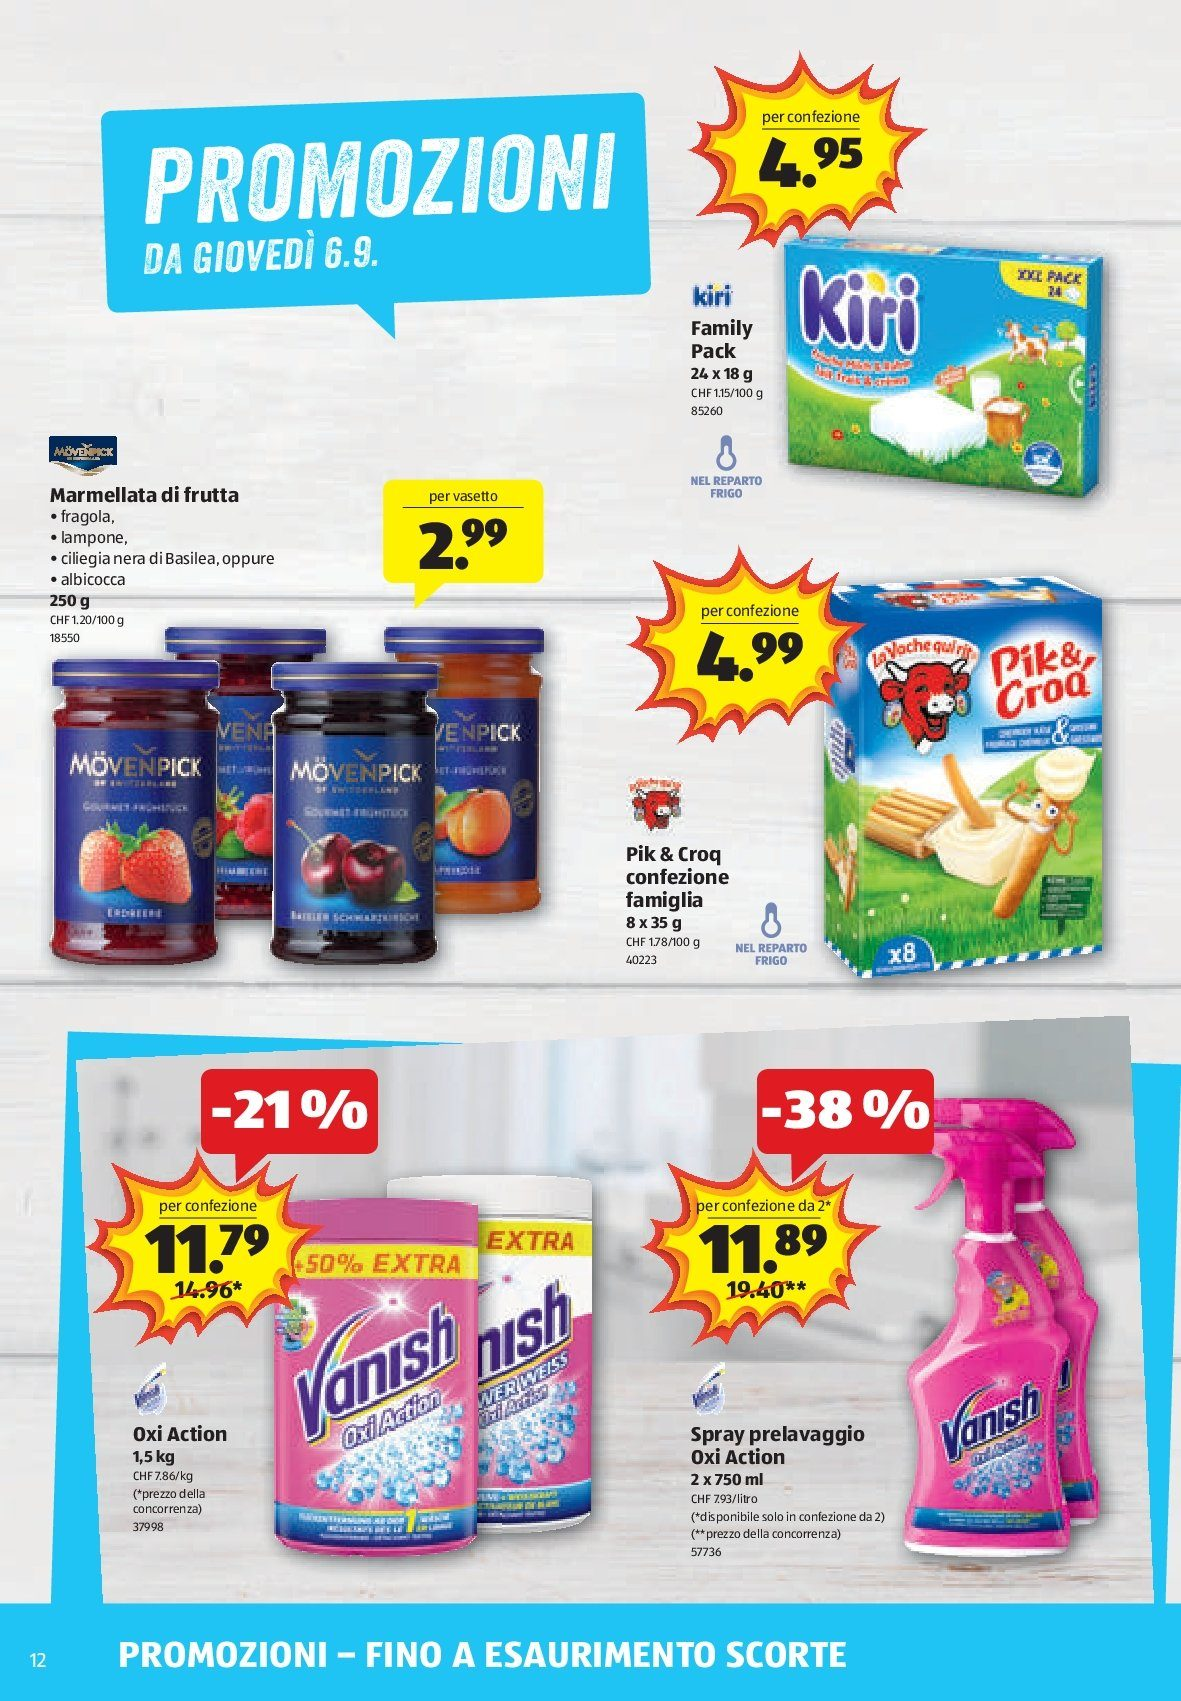 Prospekte Aldi - 6.9.2018 - 12.9.2018 - Produkte in Aktion - marmellata, spray. Seite 12.